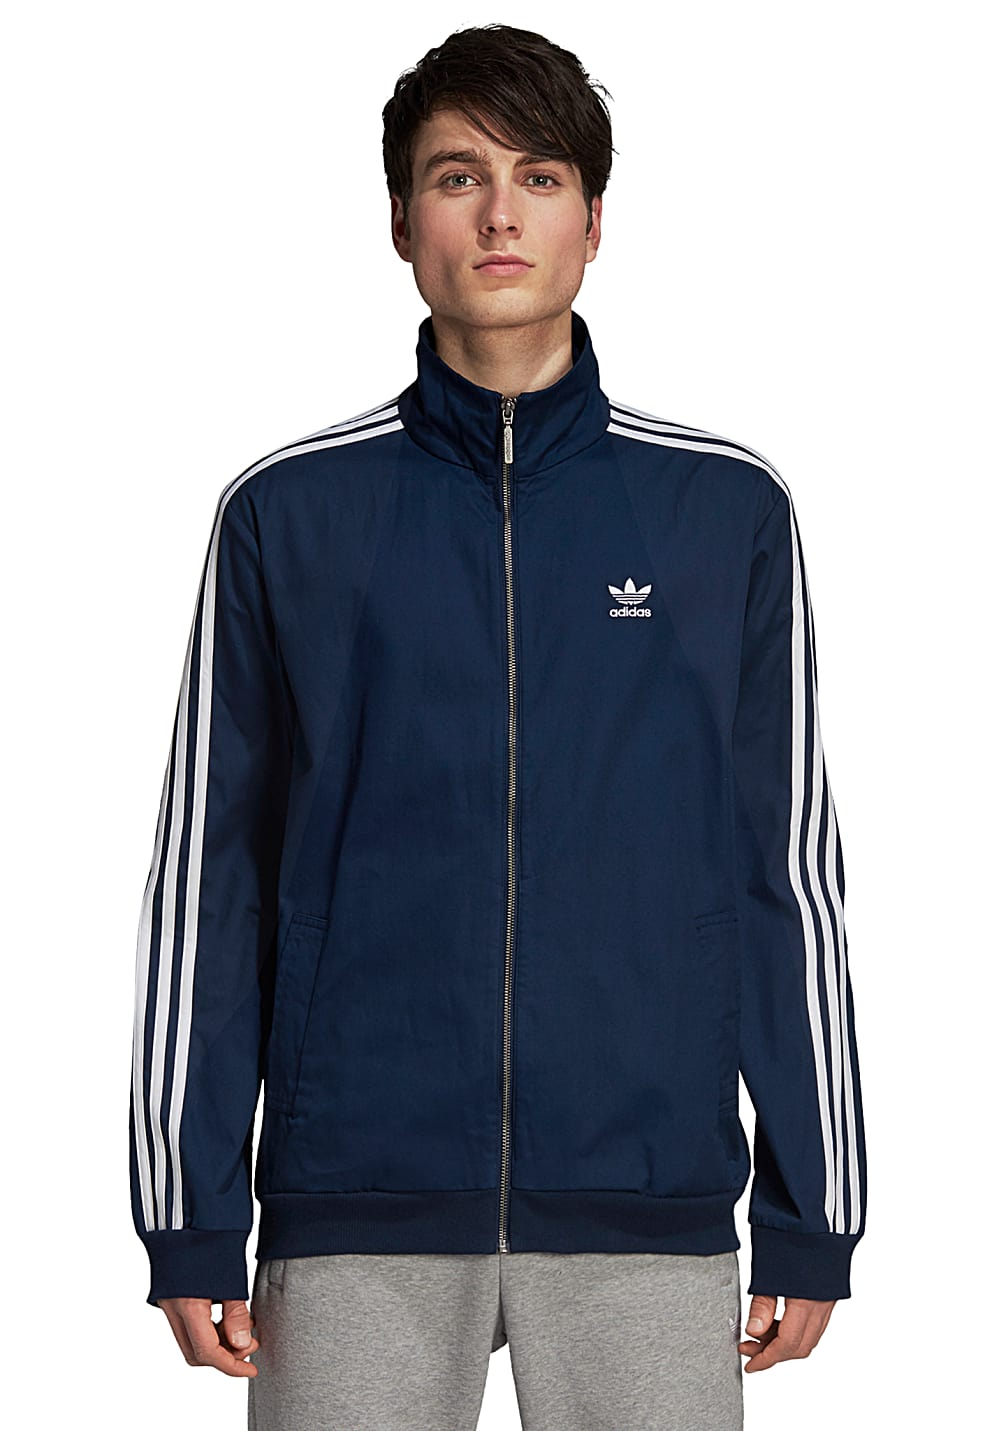 Details zu Adidas CO Woven Track Top Originals Jacke Sport